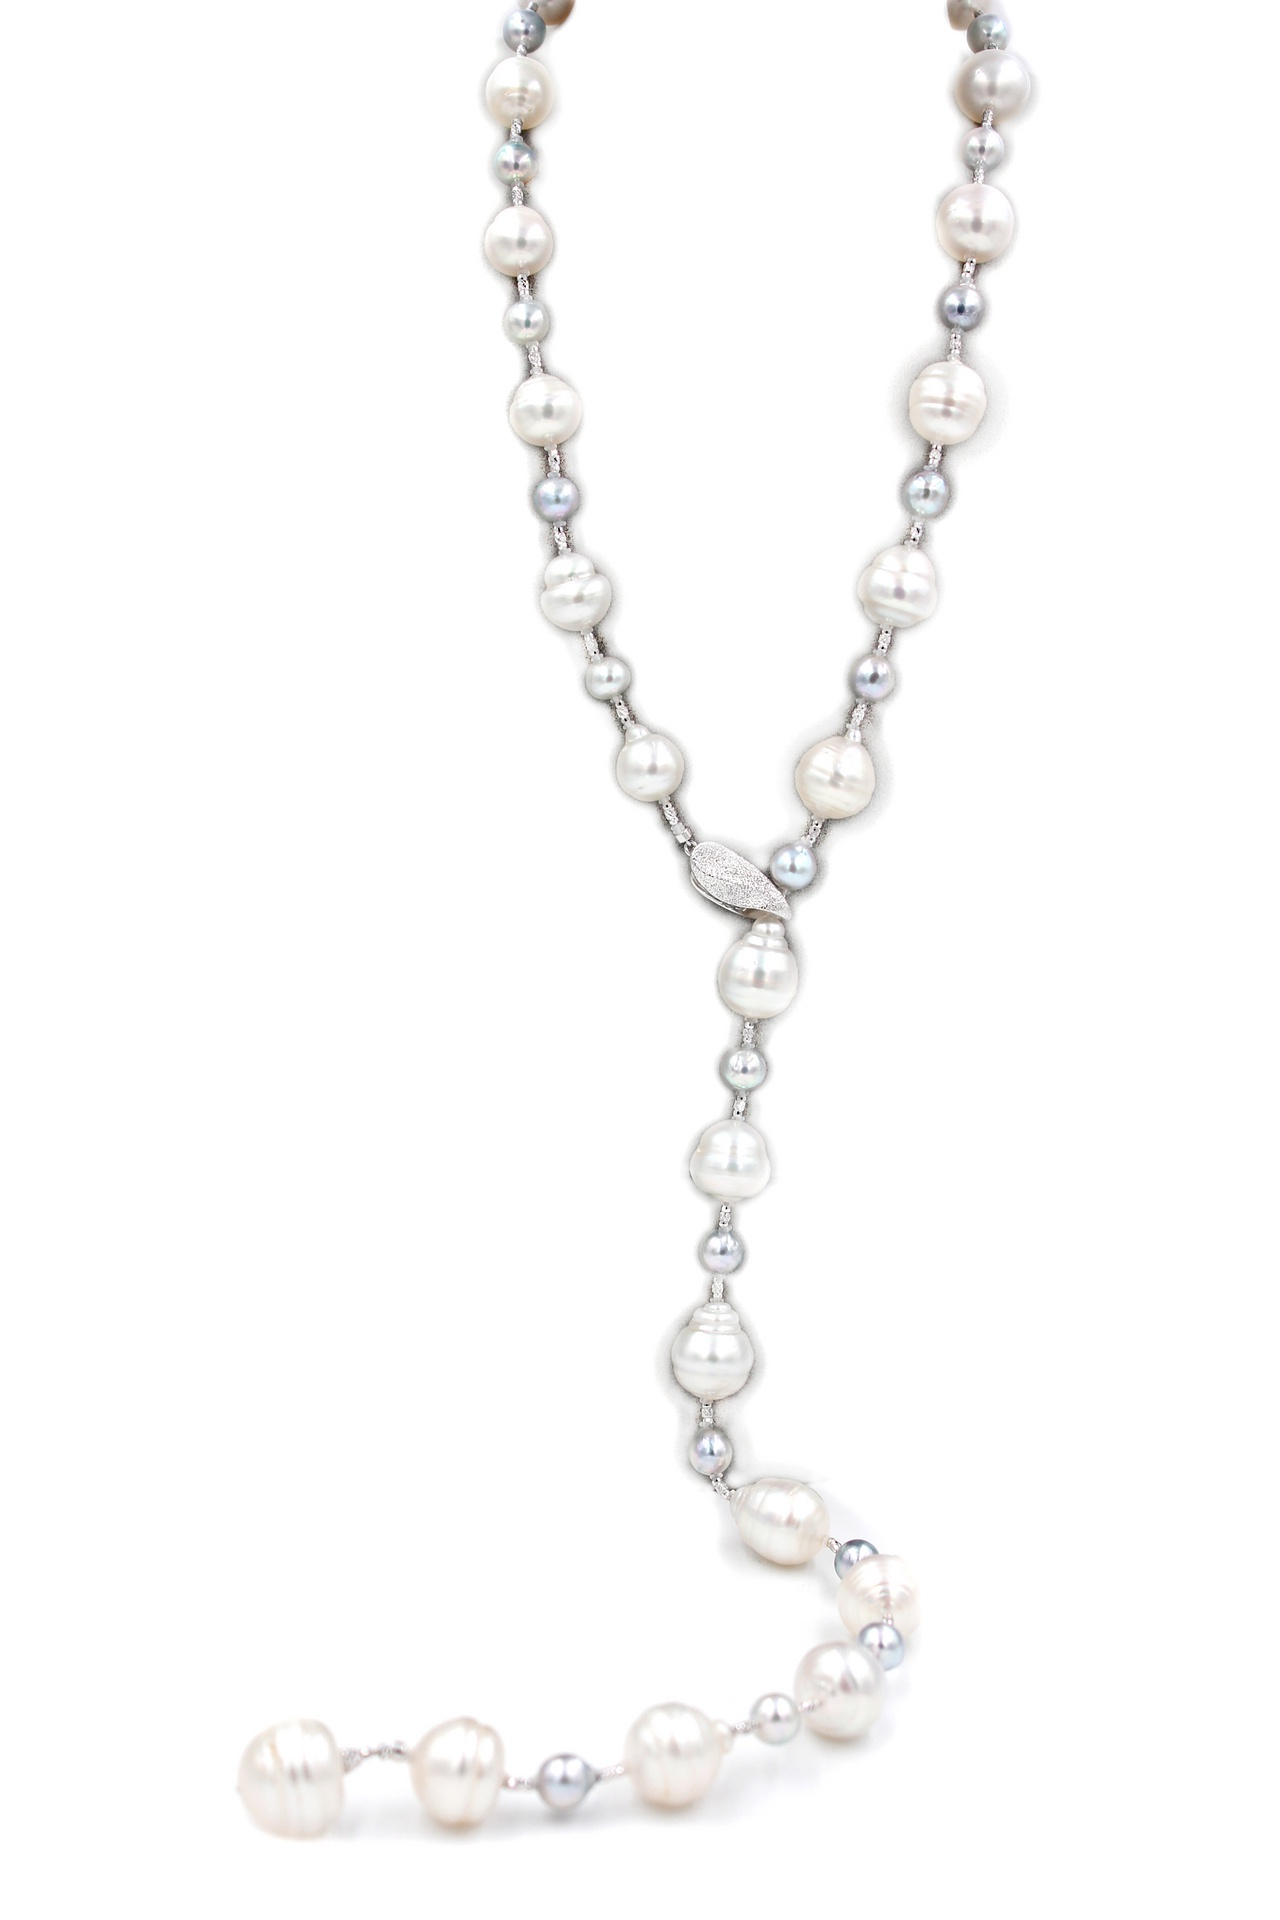 White and Silver South Sea Pearl Necklace